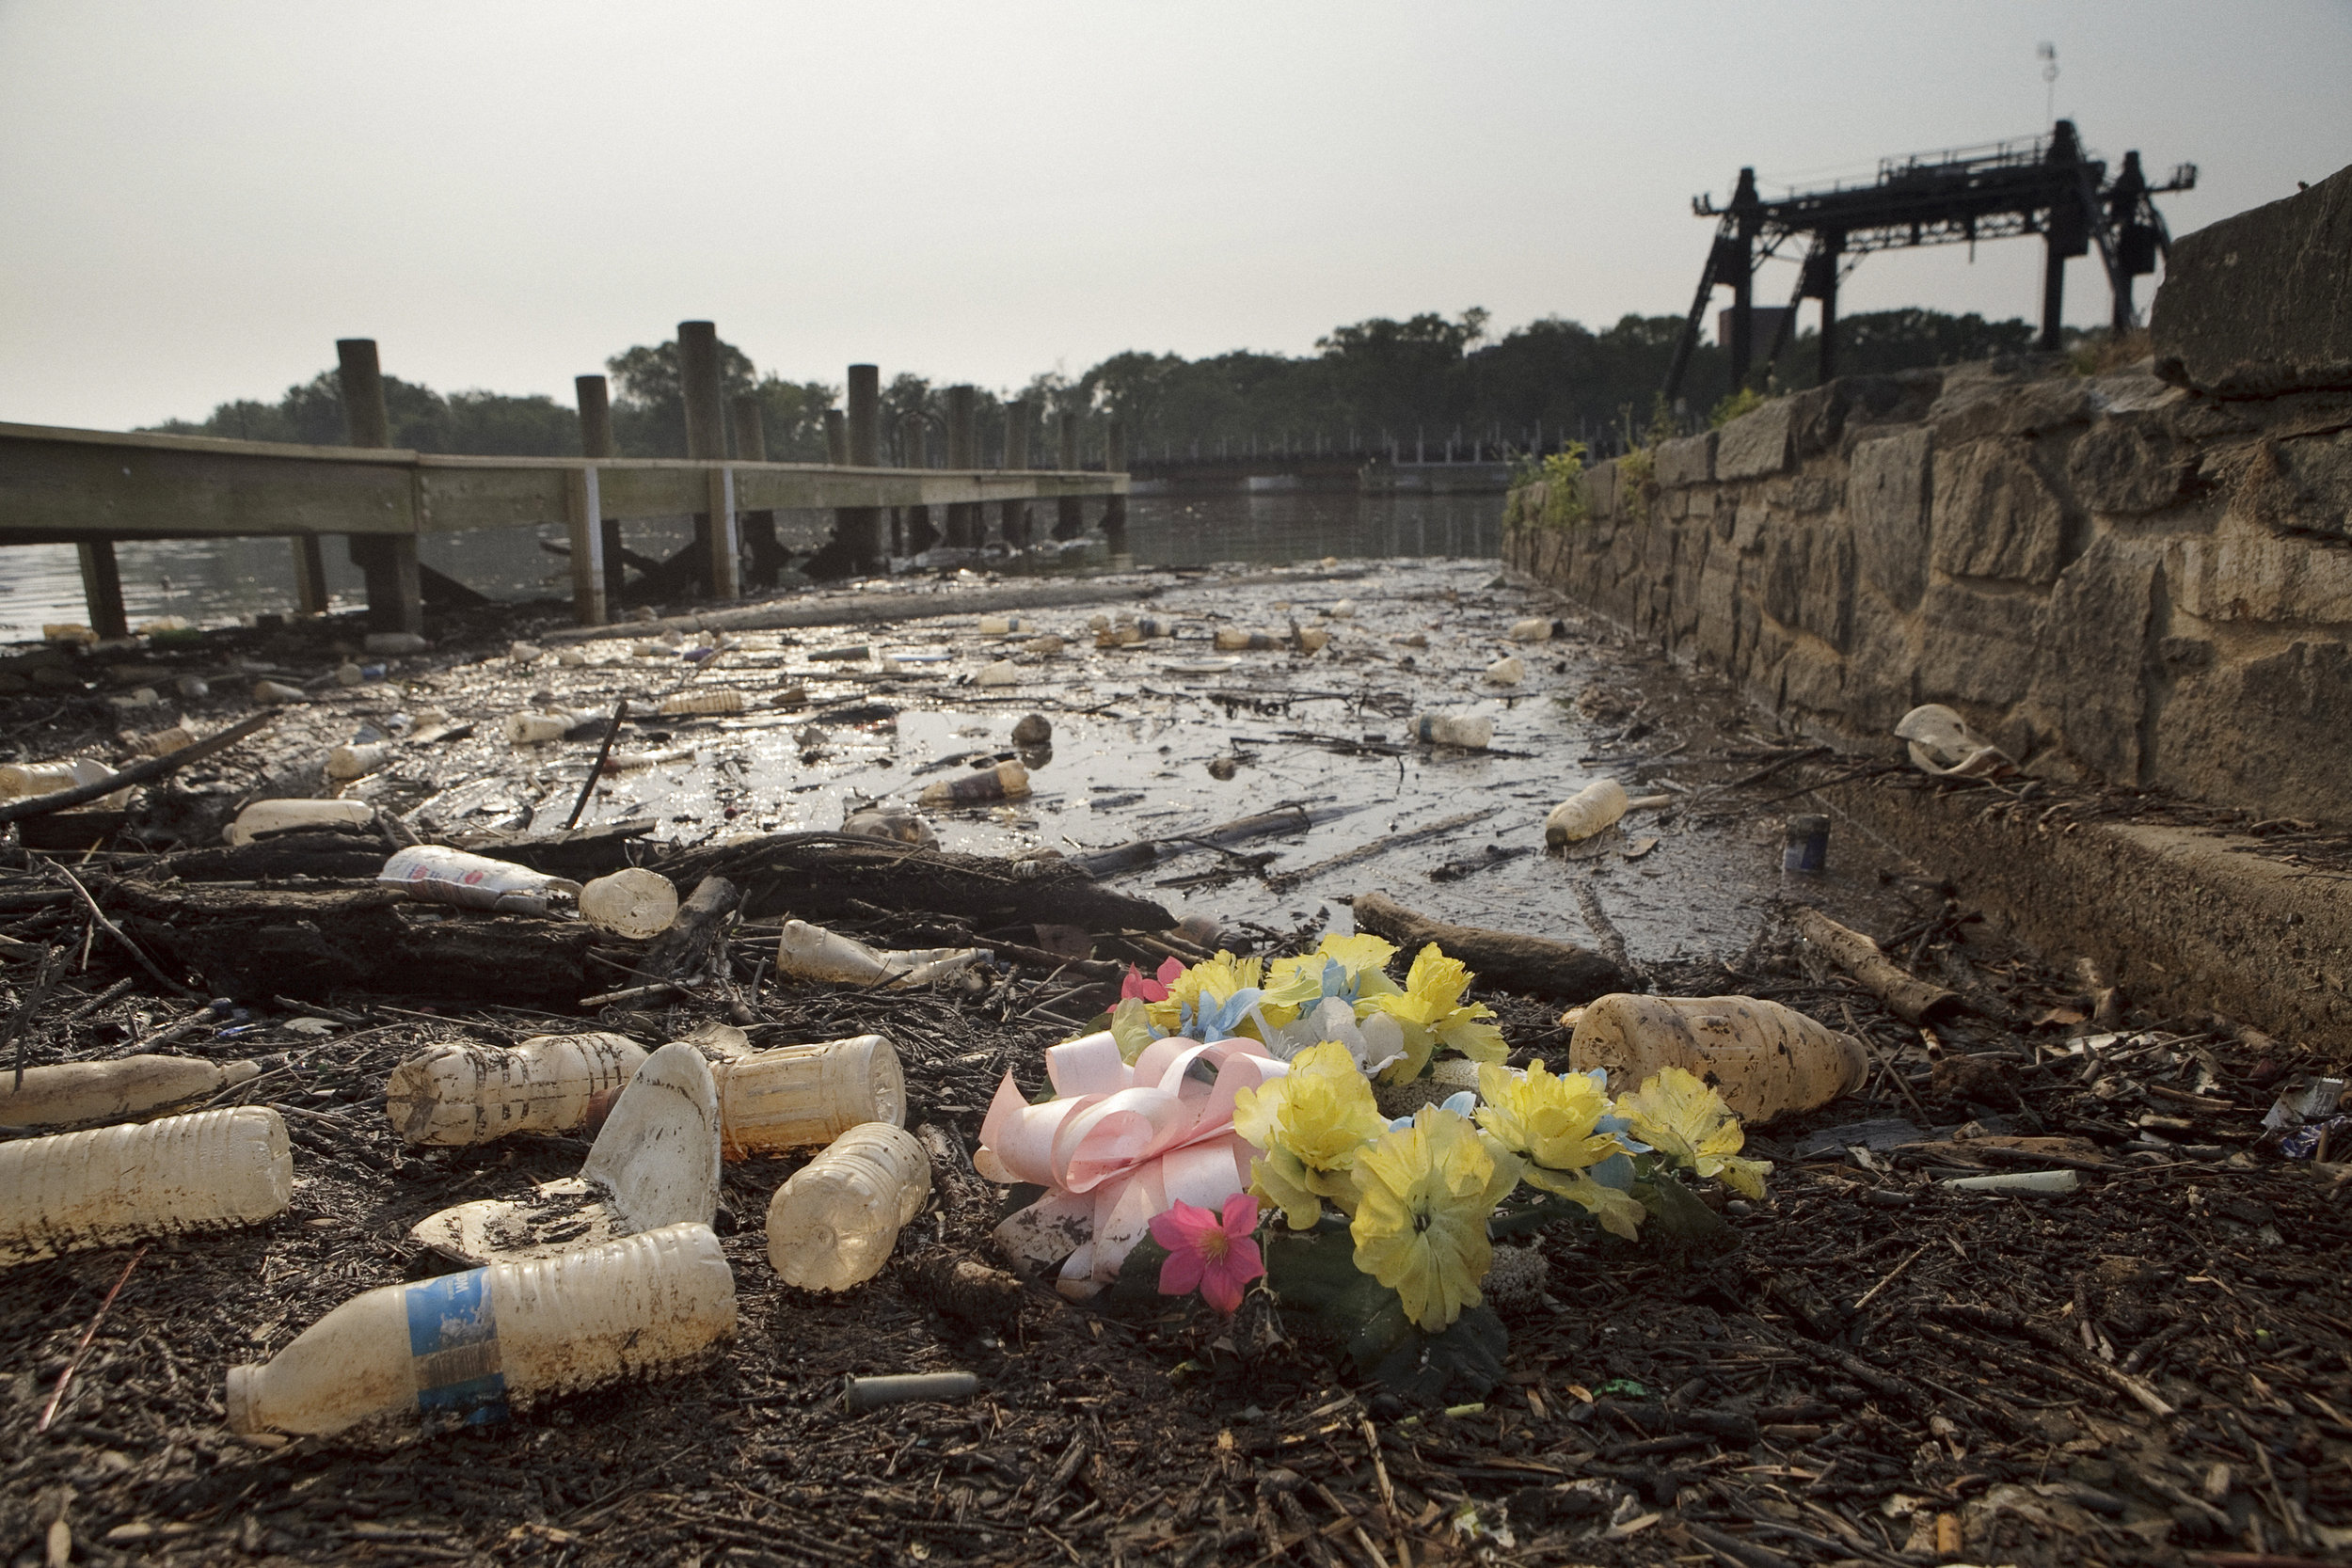 Rains often bring a great deal of trash to the surface of the river, here, what looks like a pristine funeral wreath is surrounded by washed up bottles and sticks.